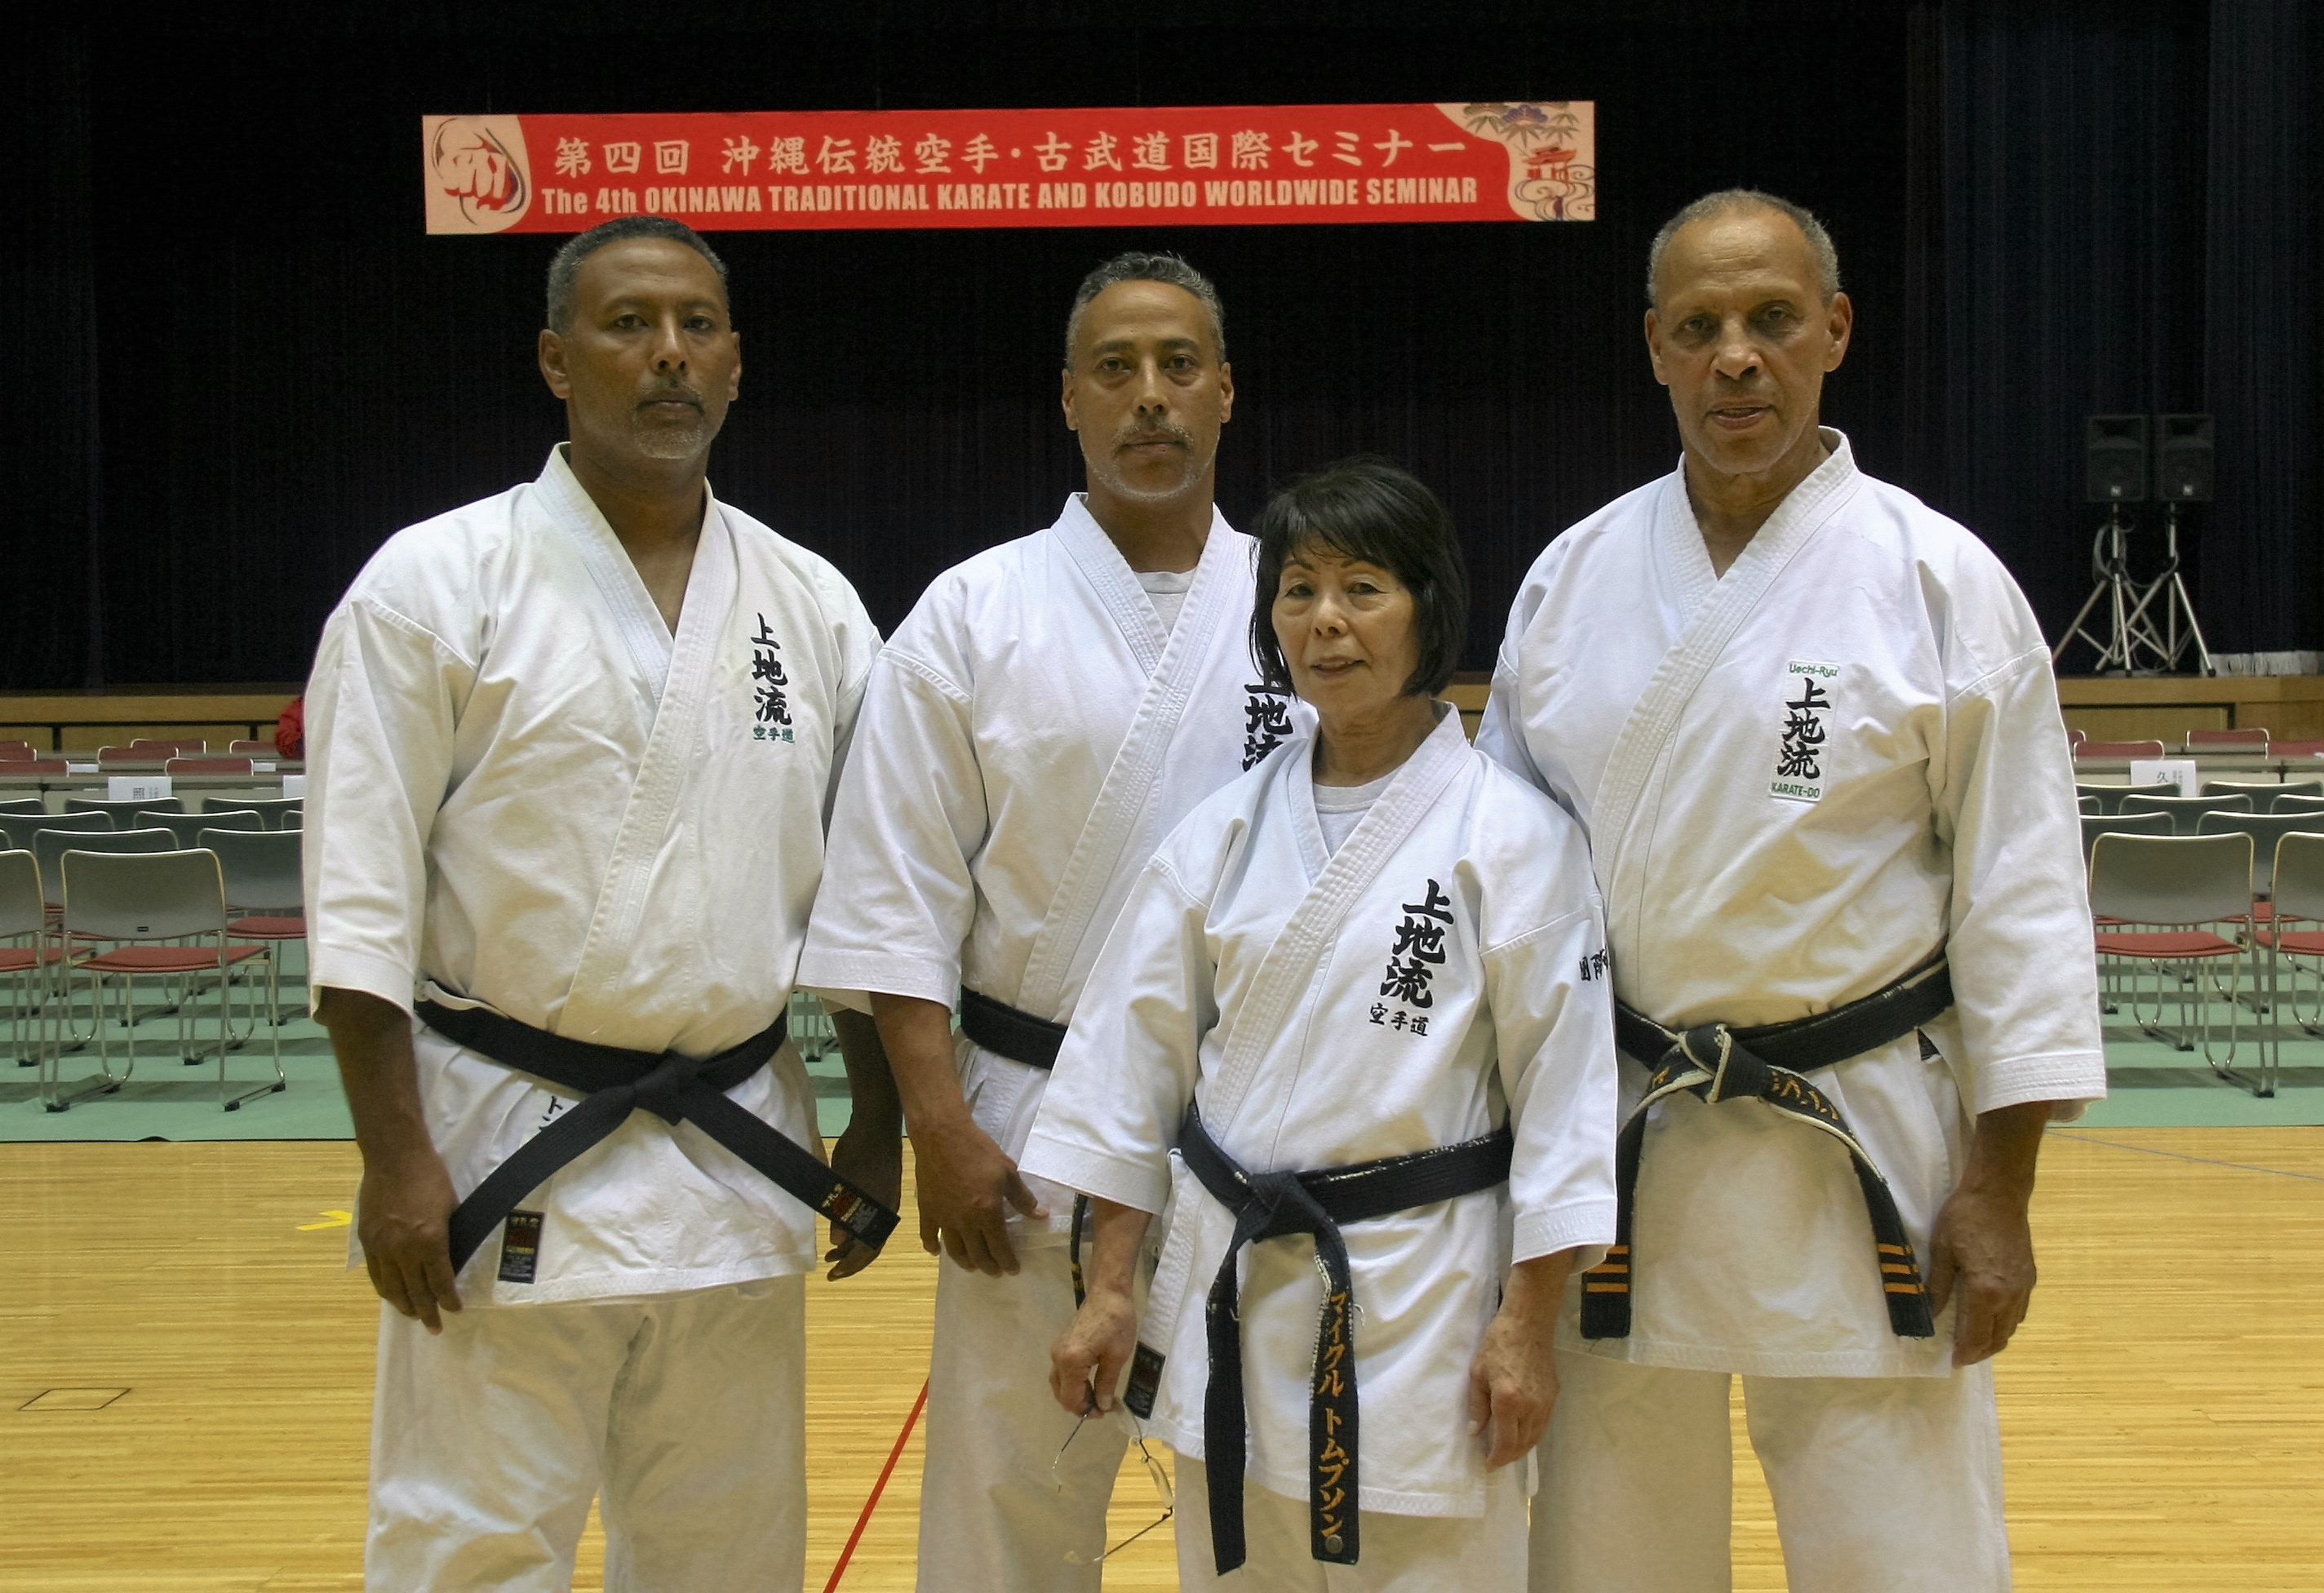 Okinawan Karate Academy is home to a highly skilled karate master in Kalamazoo, MI